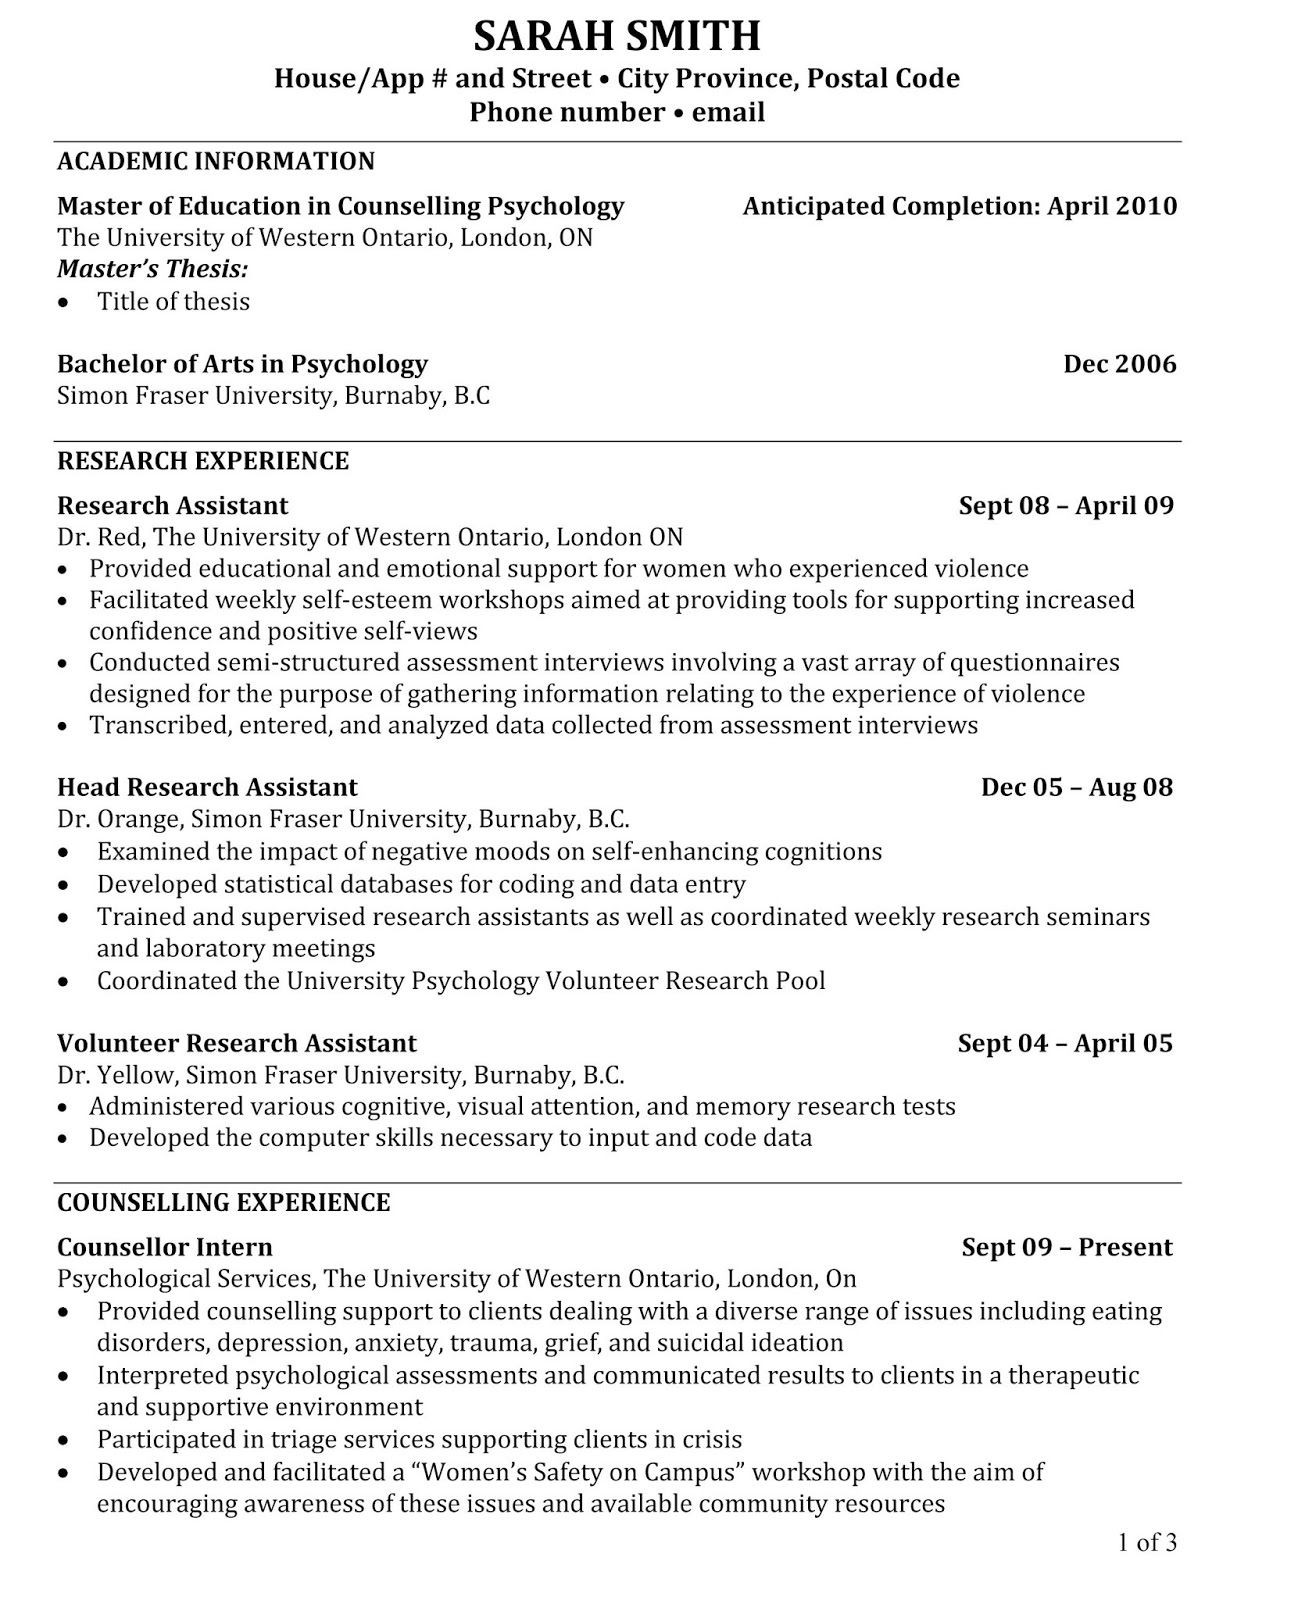 Resume for Masters Application Sample Pdf Academic Resume Sample, Academic Resume Sample Pdf, Academic ...